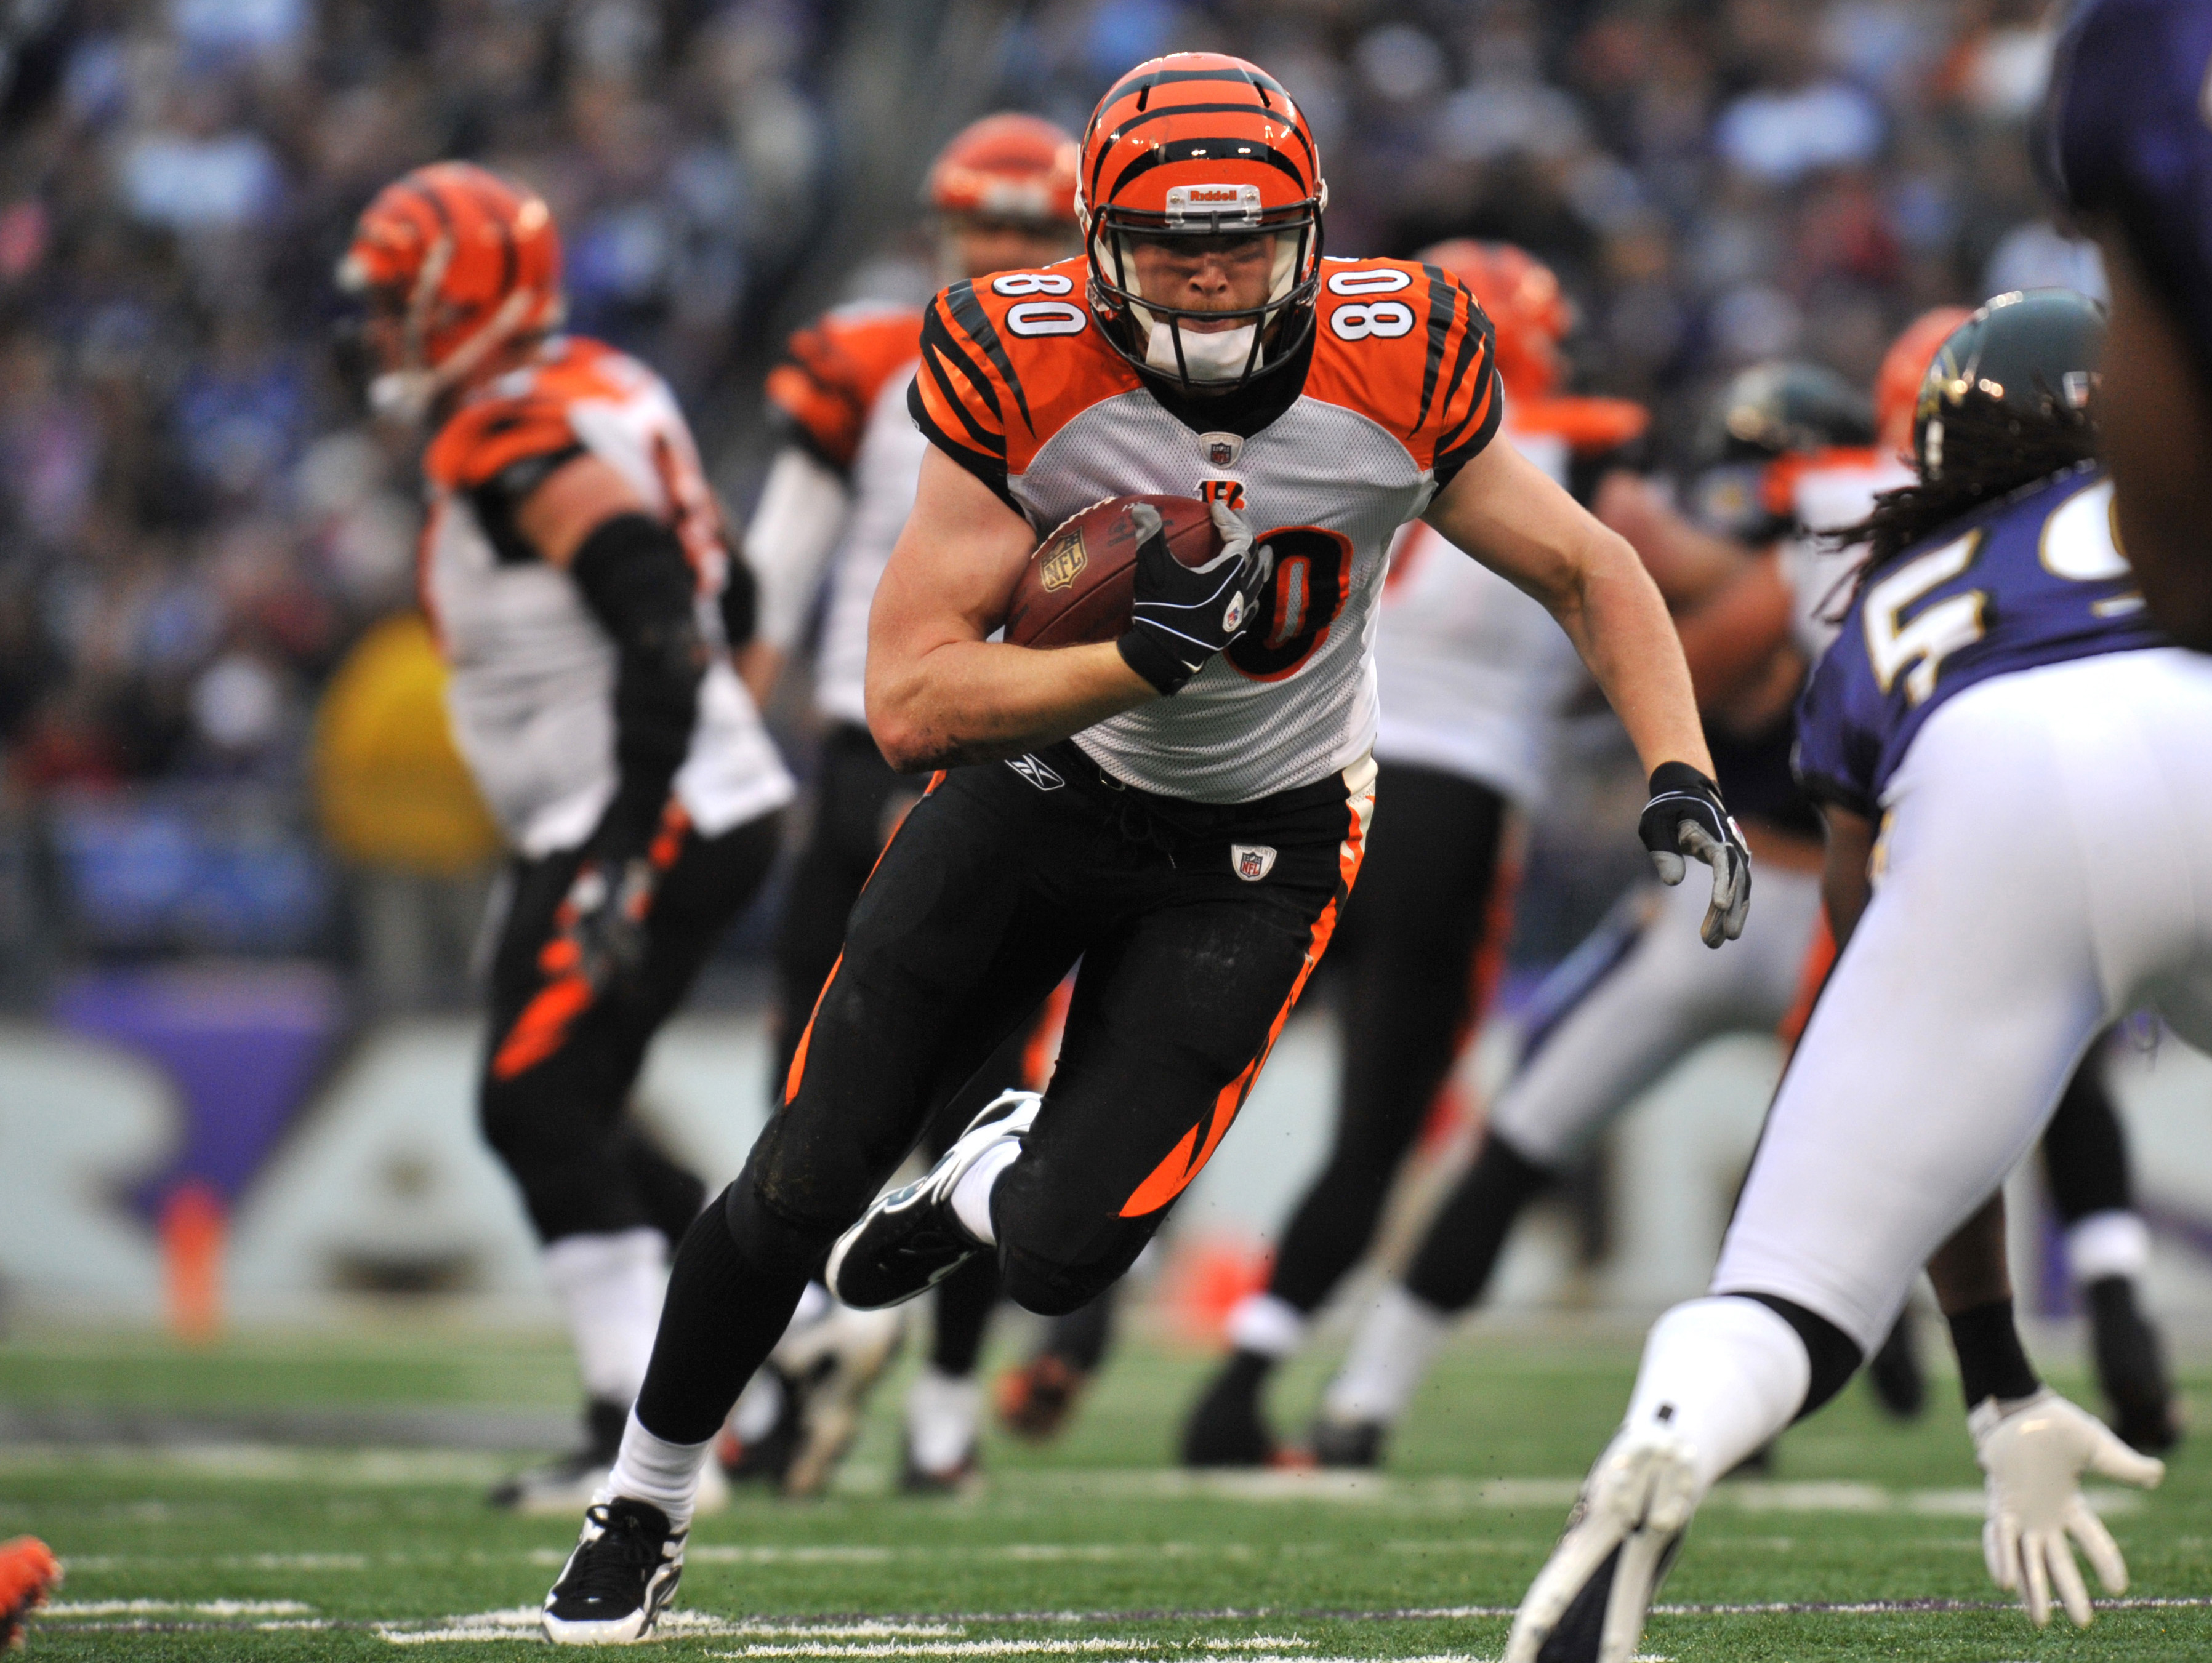 Chase Coffman with Bengals